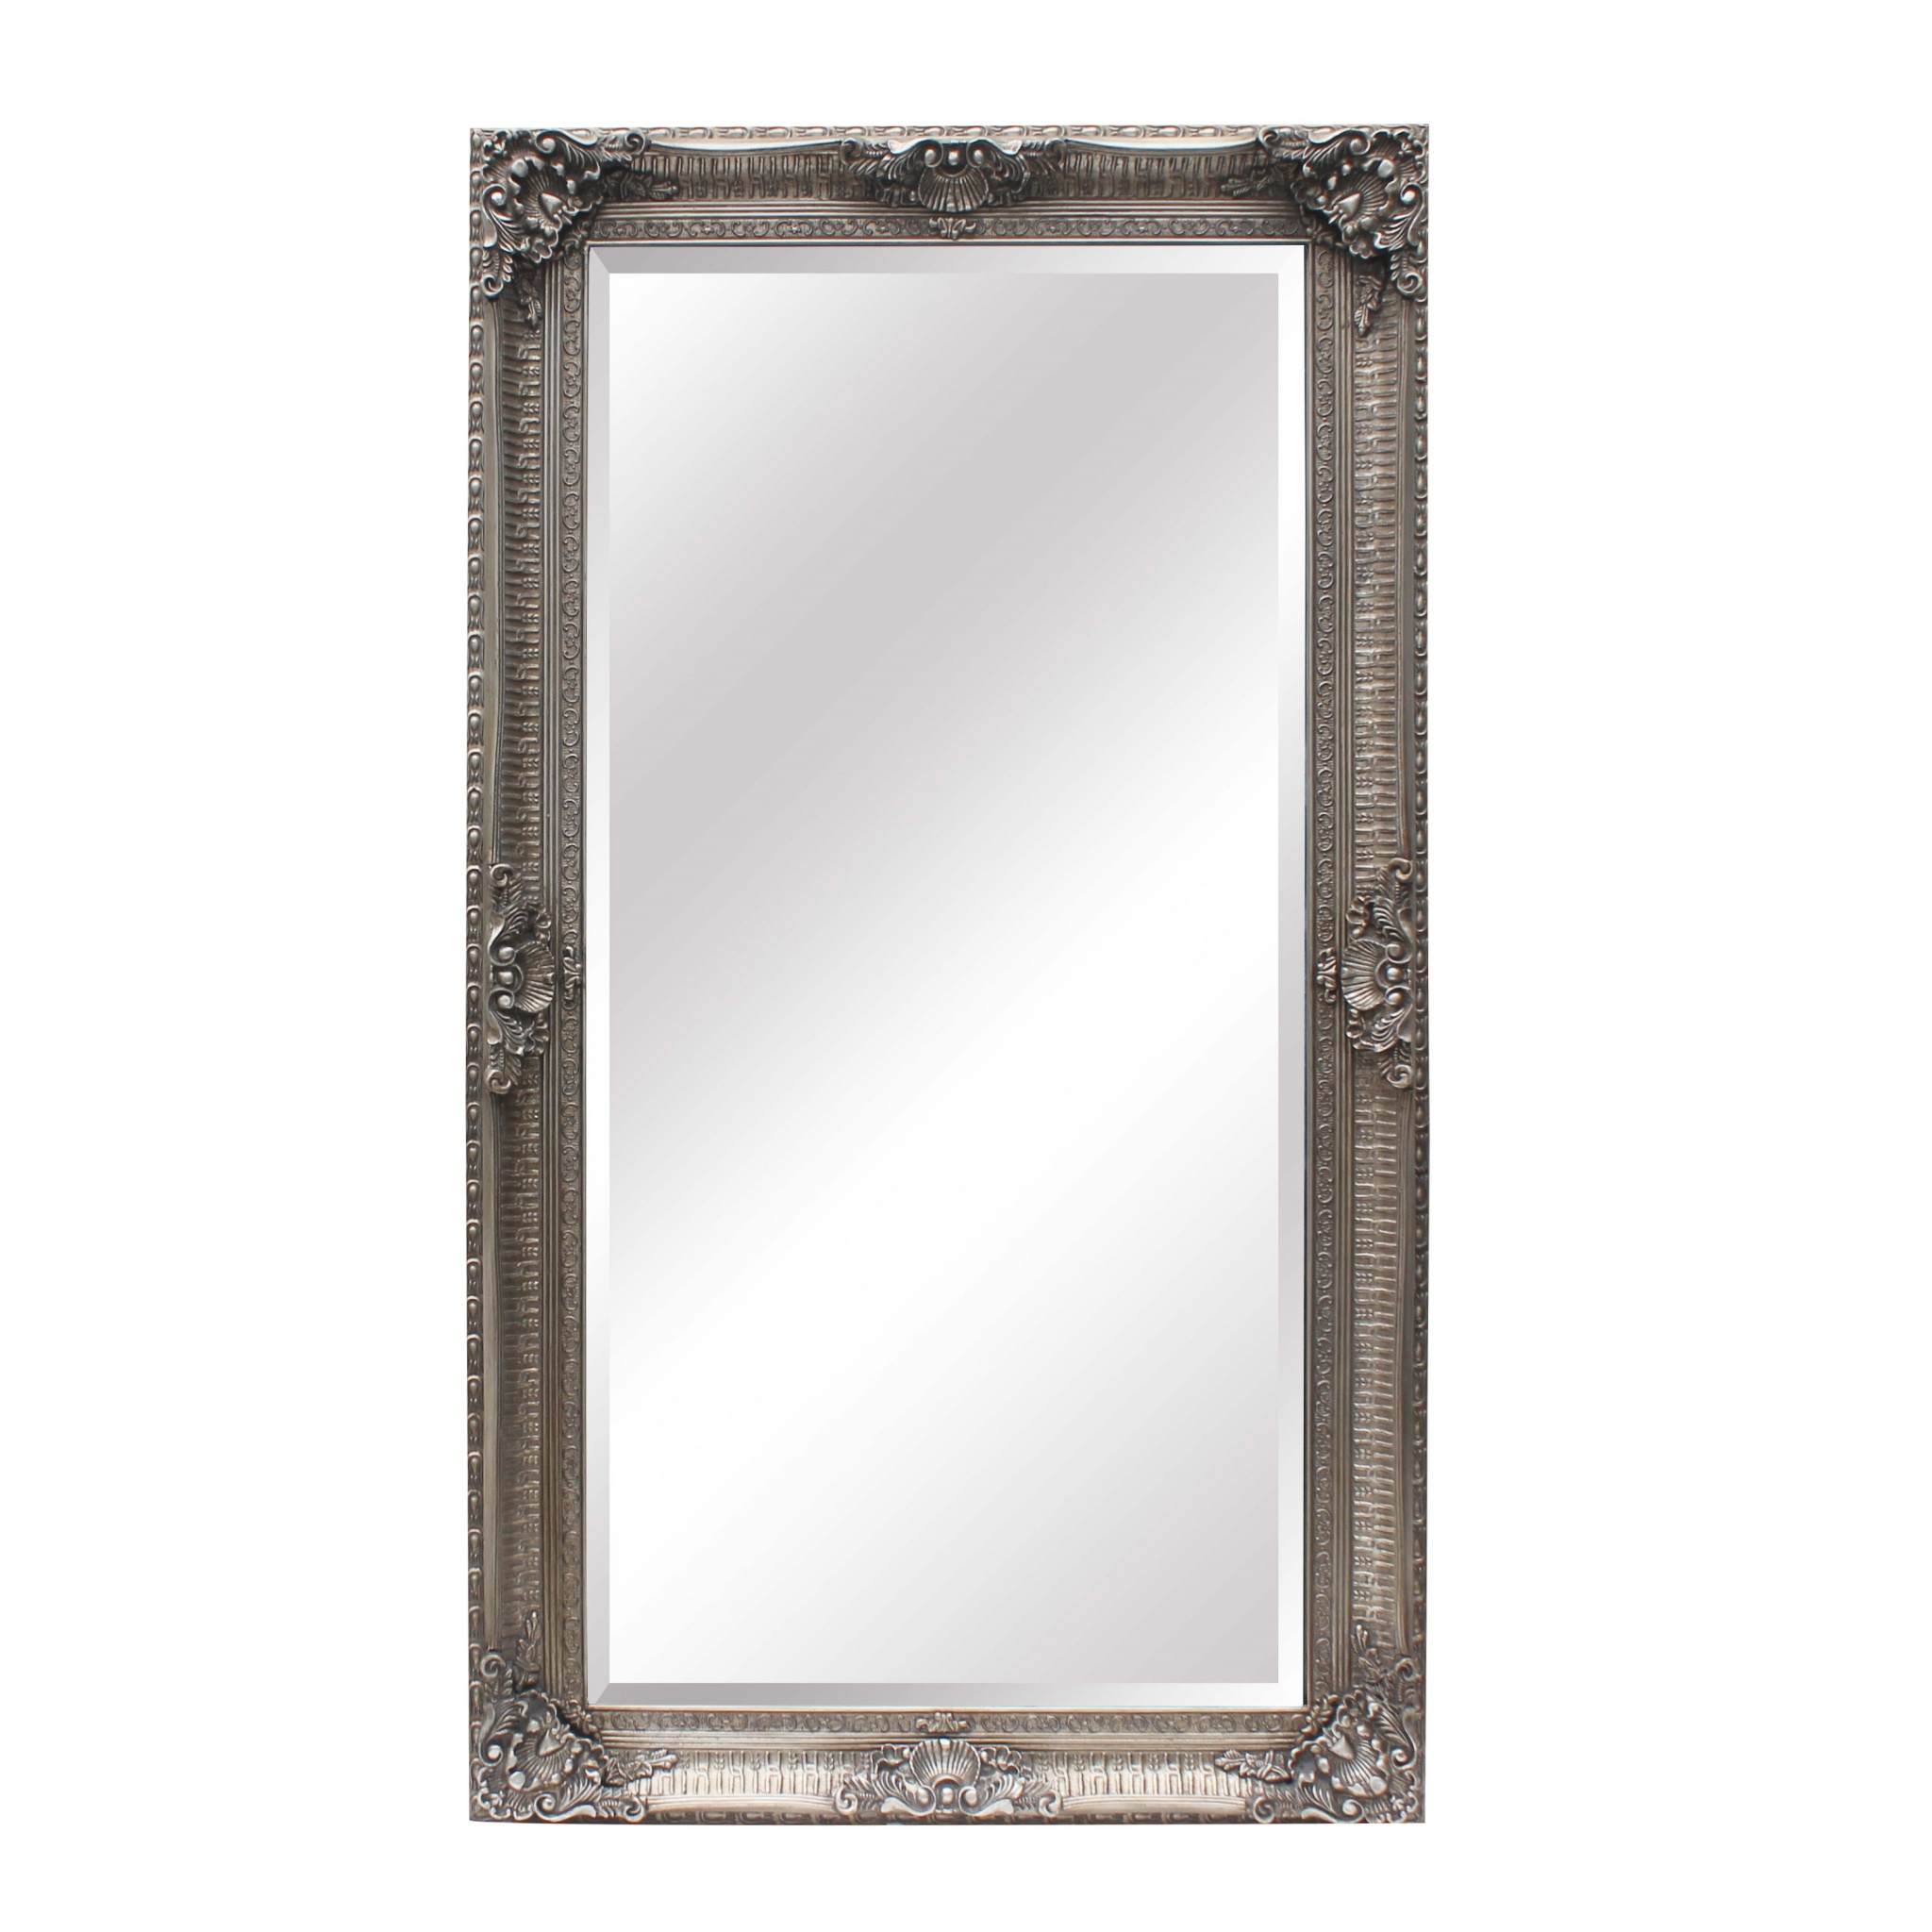 Francoise extra large ornate antiqued silver mirror la for Large silver mirror